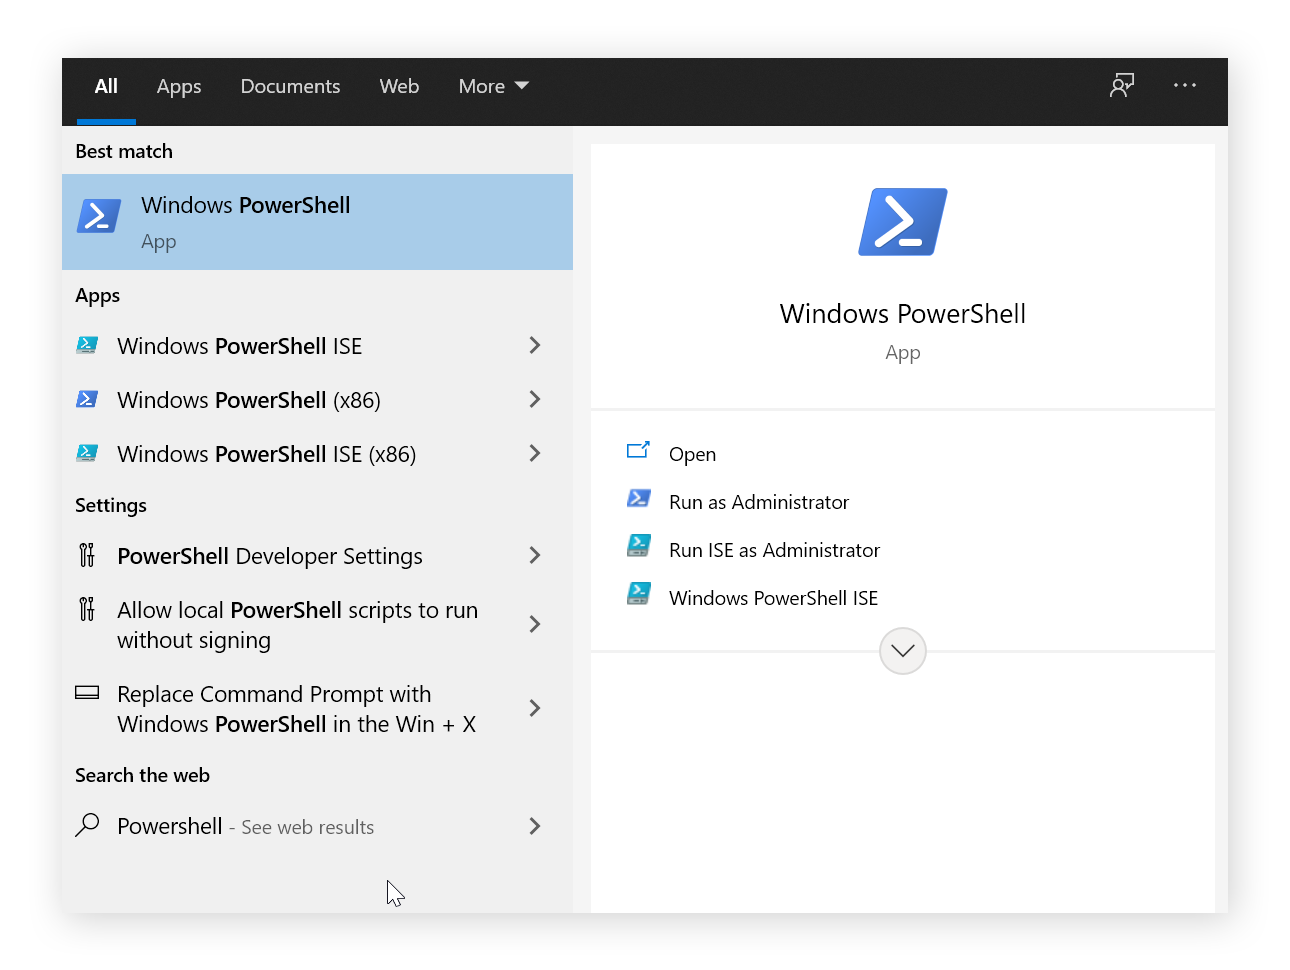 An image of start menu when Powershell is typed into it